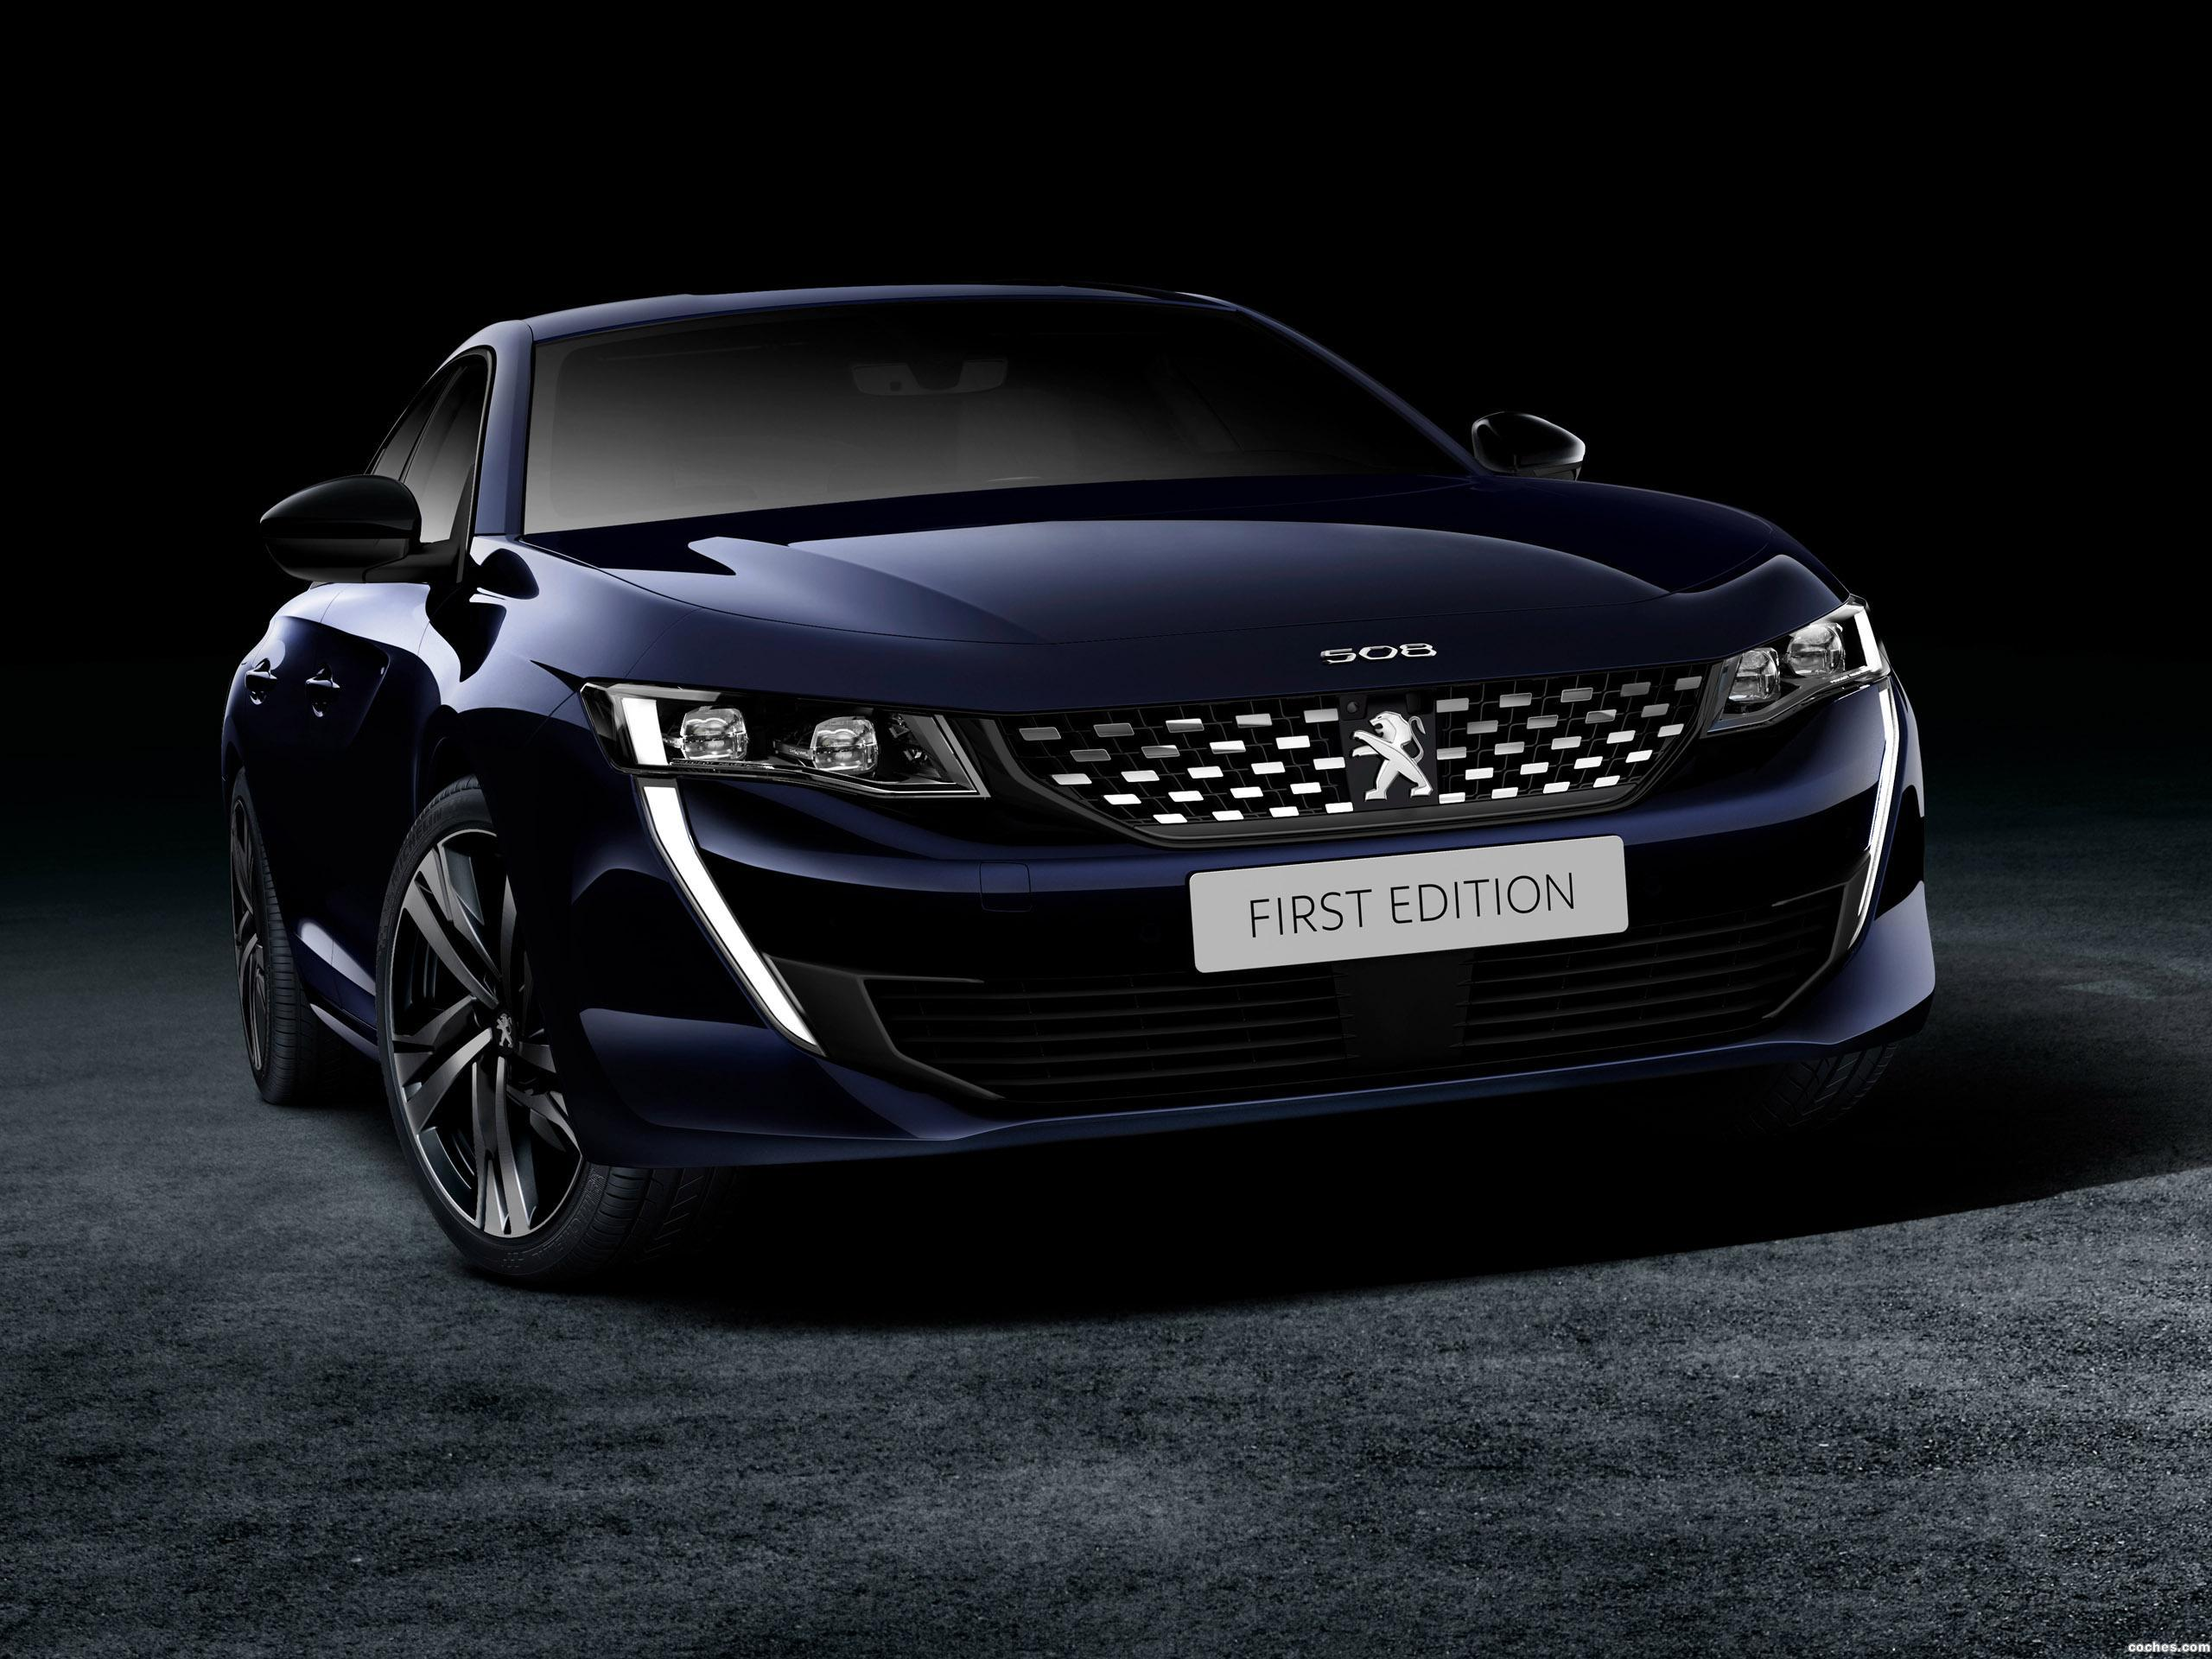 peugeot_508-first-edition-2018_r2.jpg